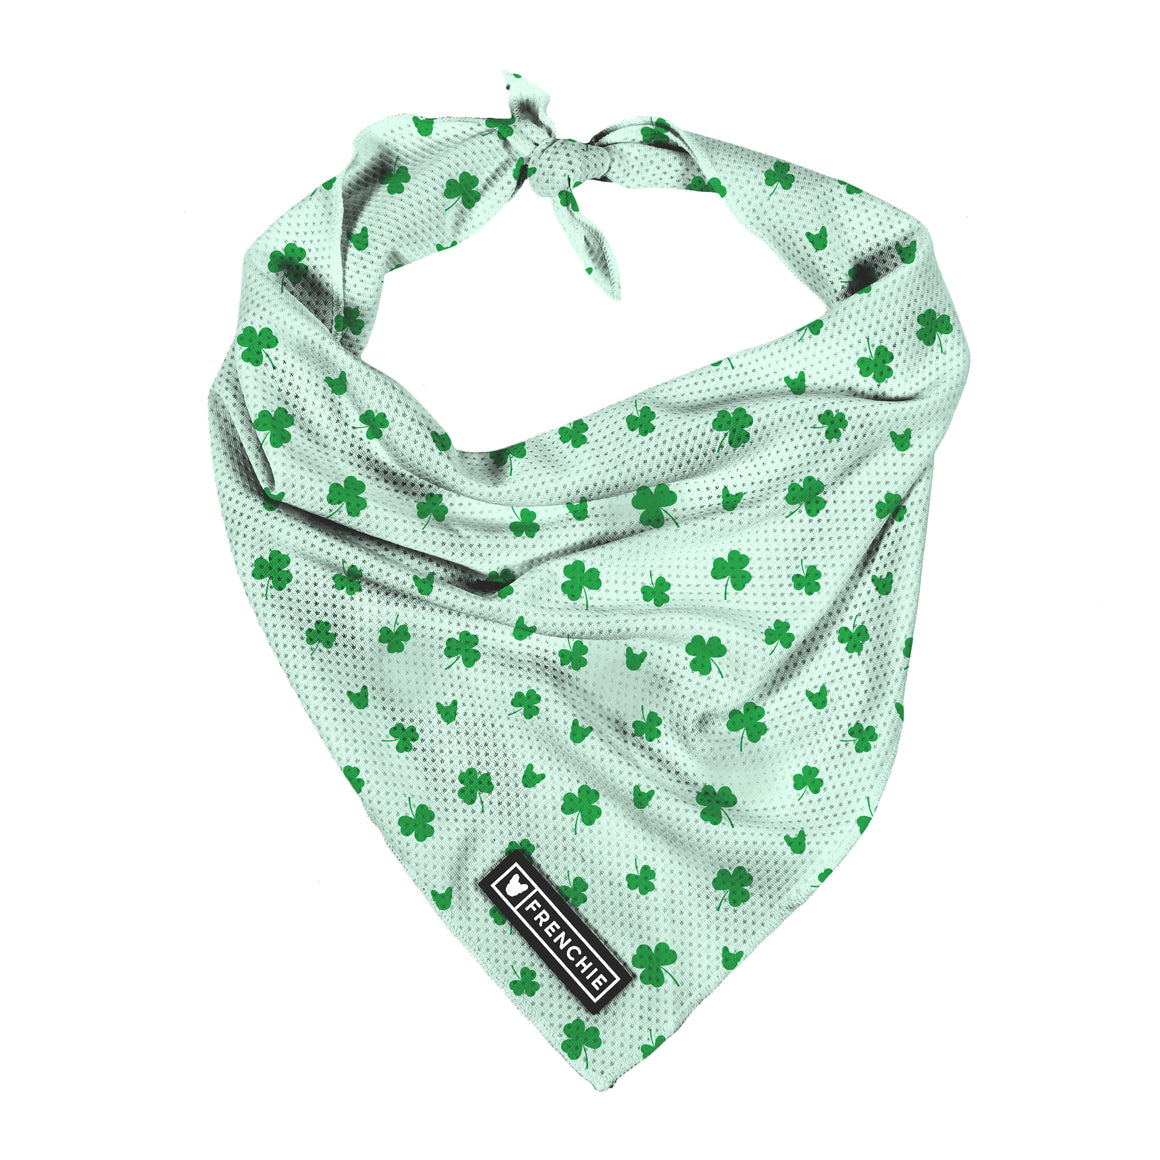 Frenchie Cooling Bandana- Clover - Frenchie Bulldog - Shop Harnesses for French Bulldogs - Shop French Bulldog Harness - Harnesses for Pugs